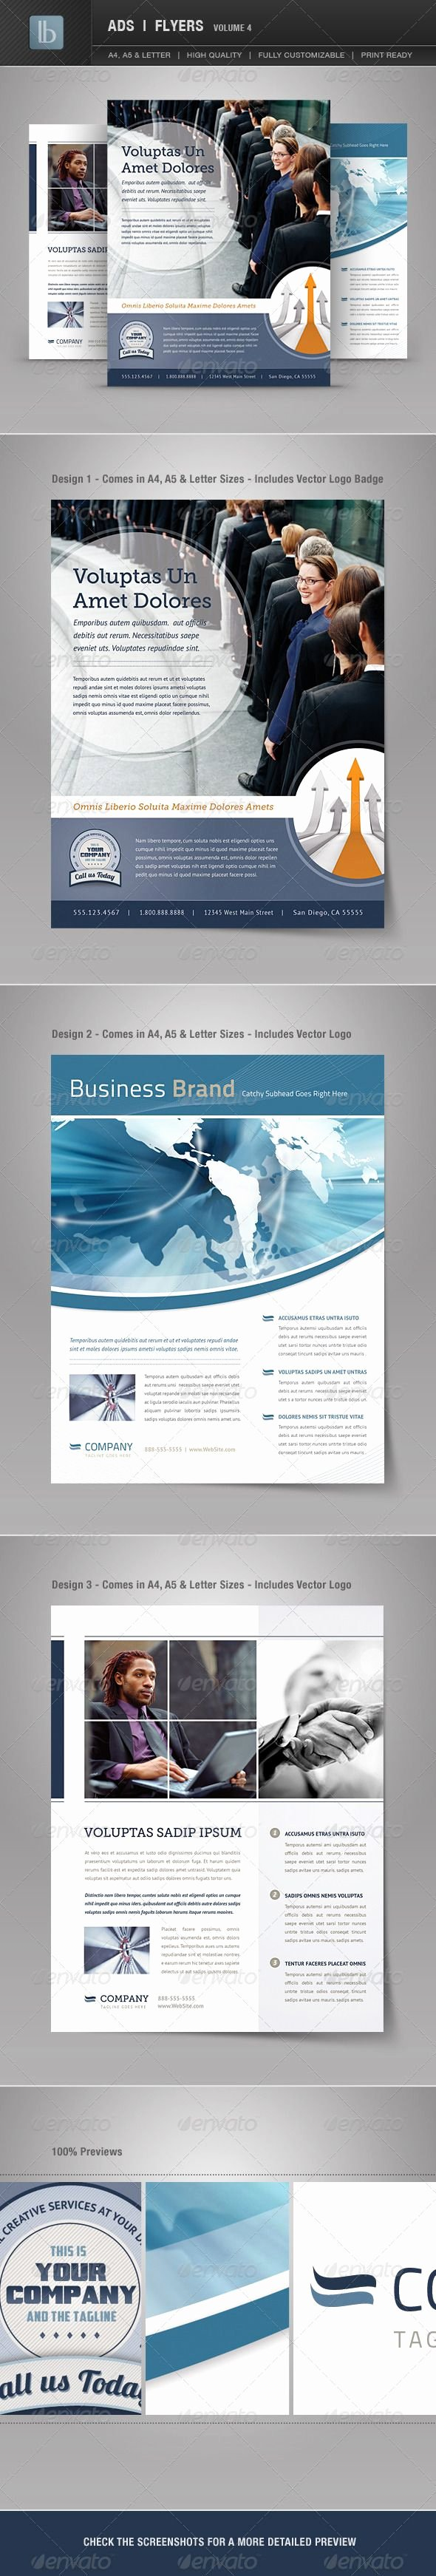 Ibm Business Card Template Fresh 75 Best Images About Marketing Collateral On Pinterest